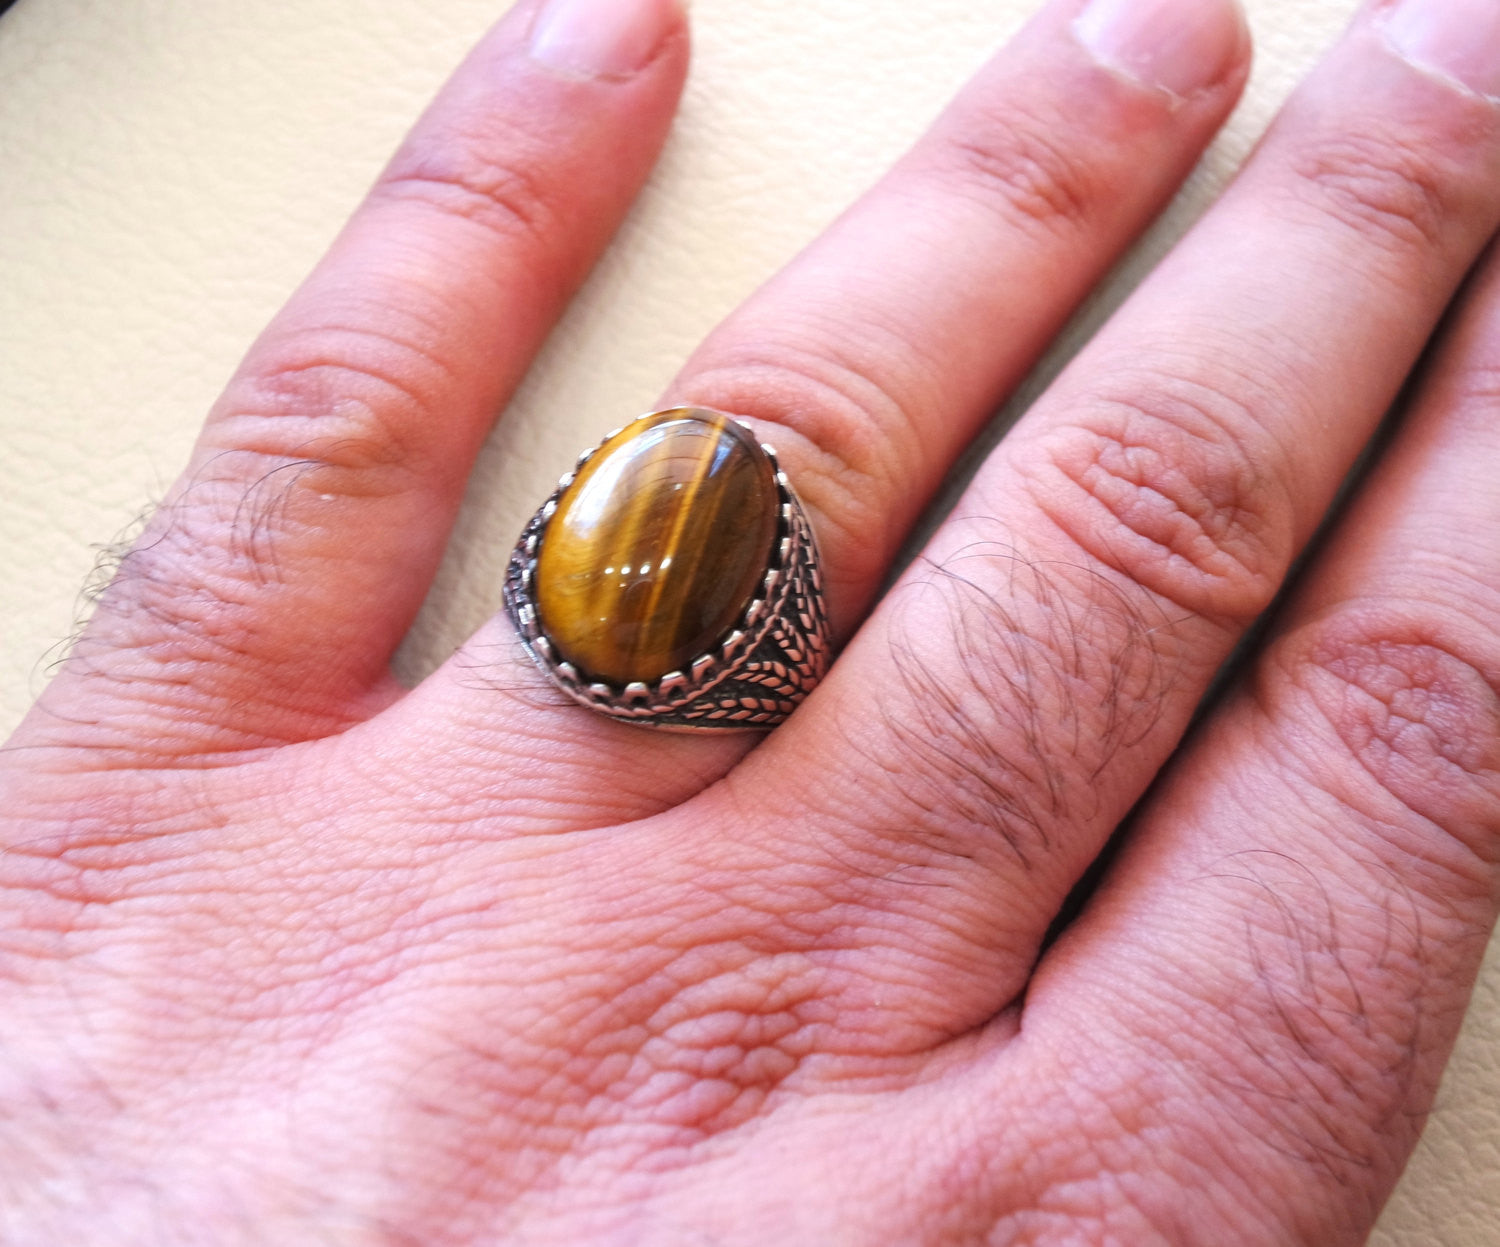 tiger eye semi precious natural stone men ring sterling silver 925 and bronze jewelry handmade arabic turkey ottoman style any size